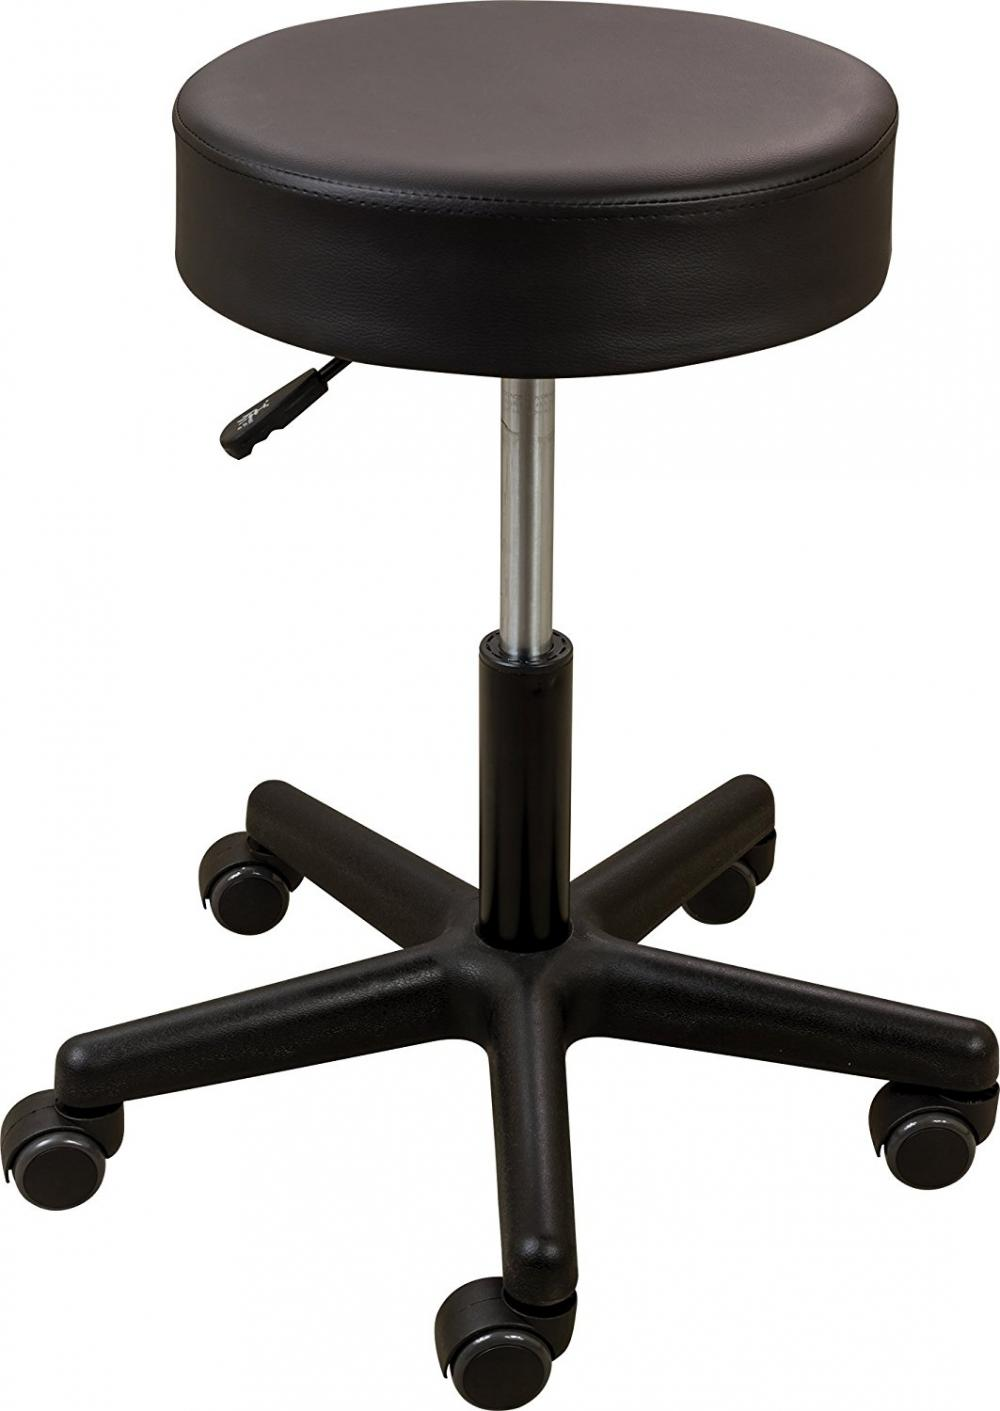 Roscoe Pneumatic Stool (Black)